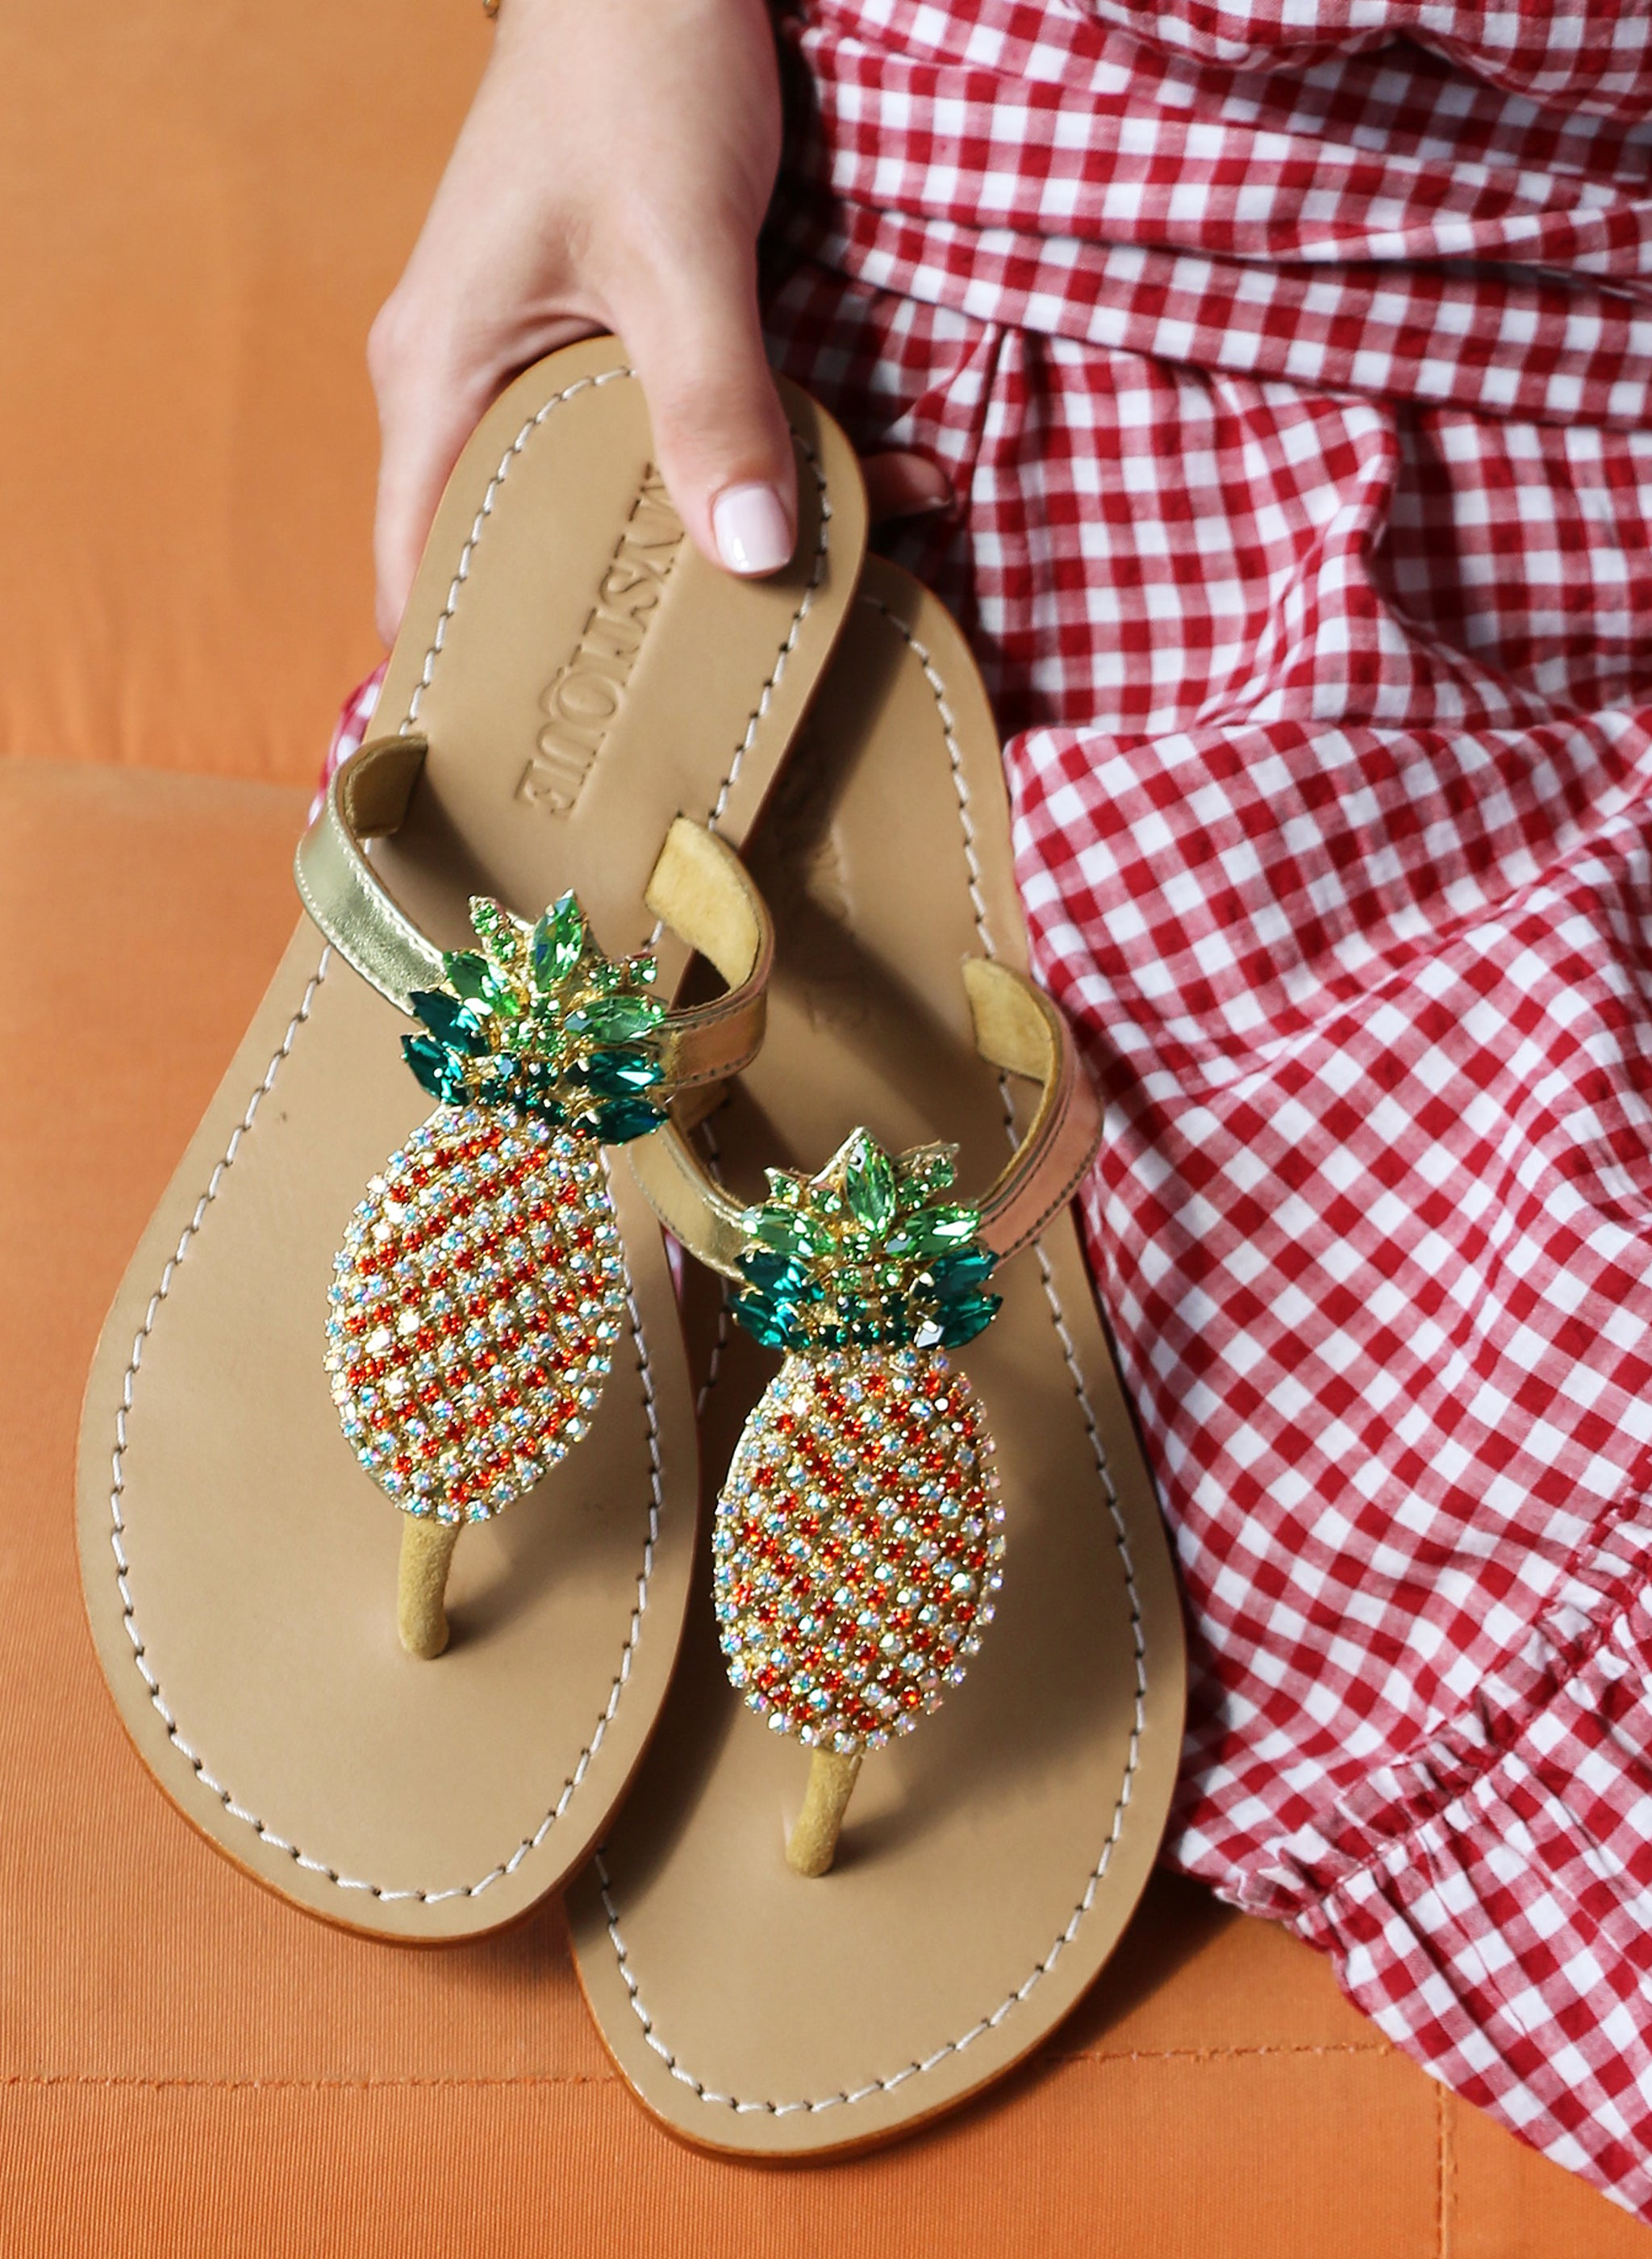 5a20529169e8d Jeweled   Embellished Flat Leather Women s Sandals